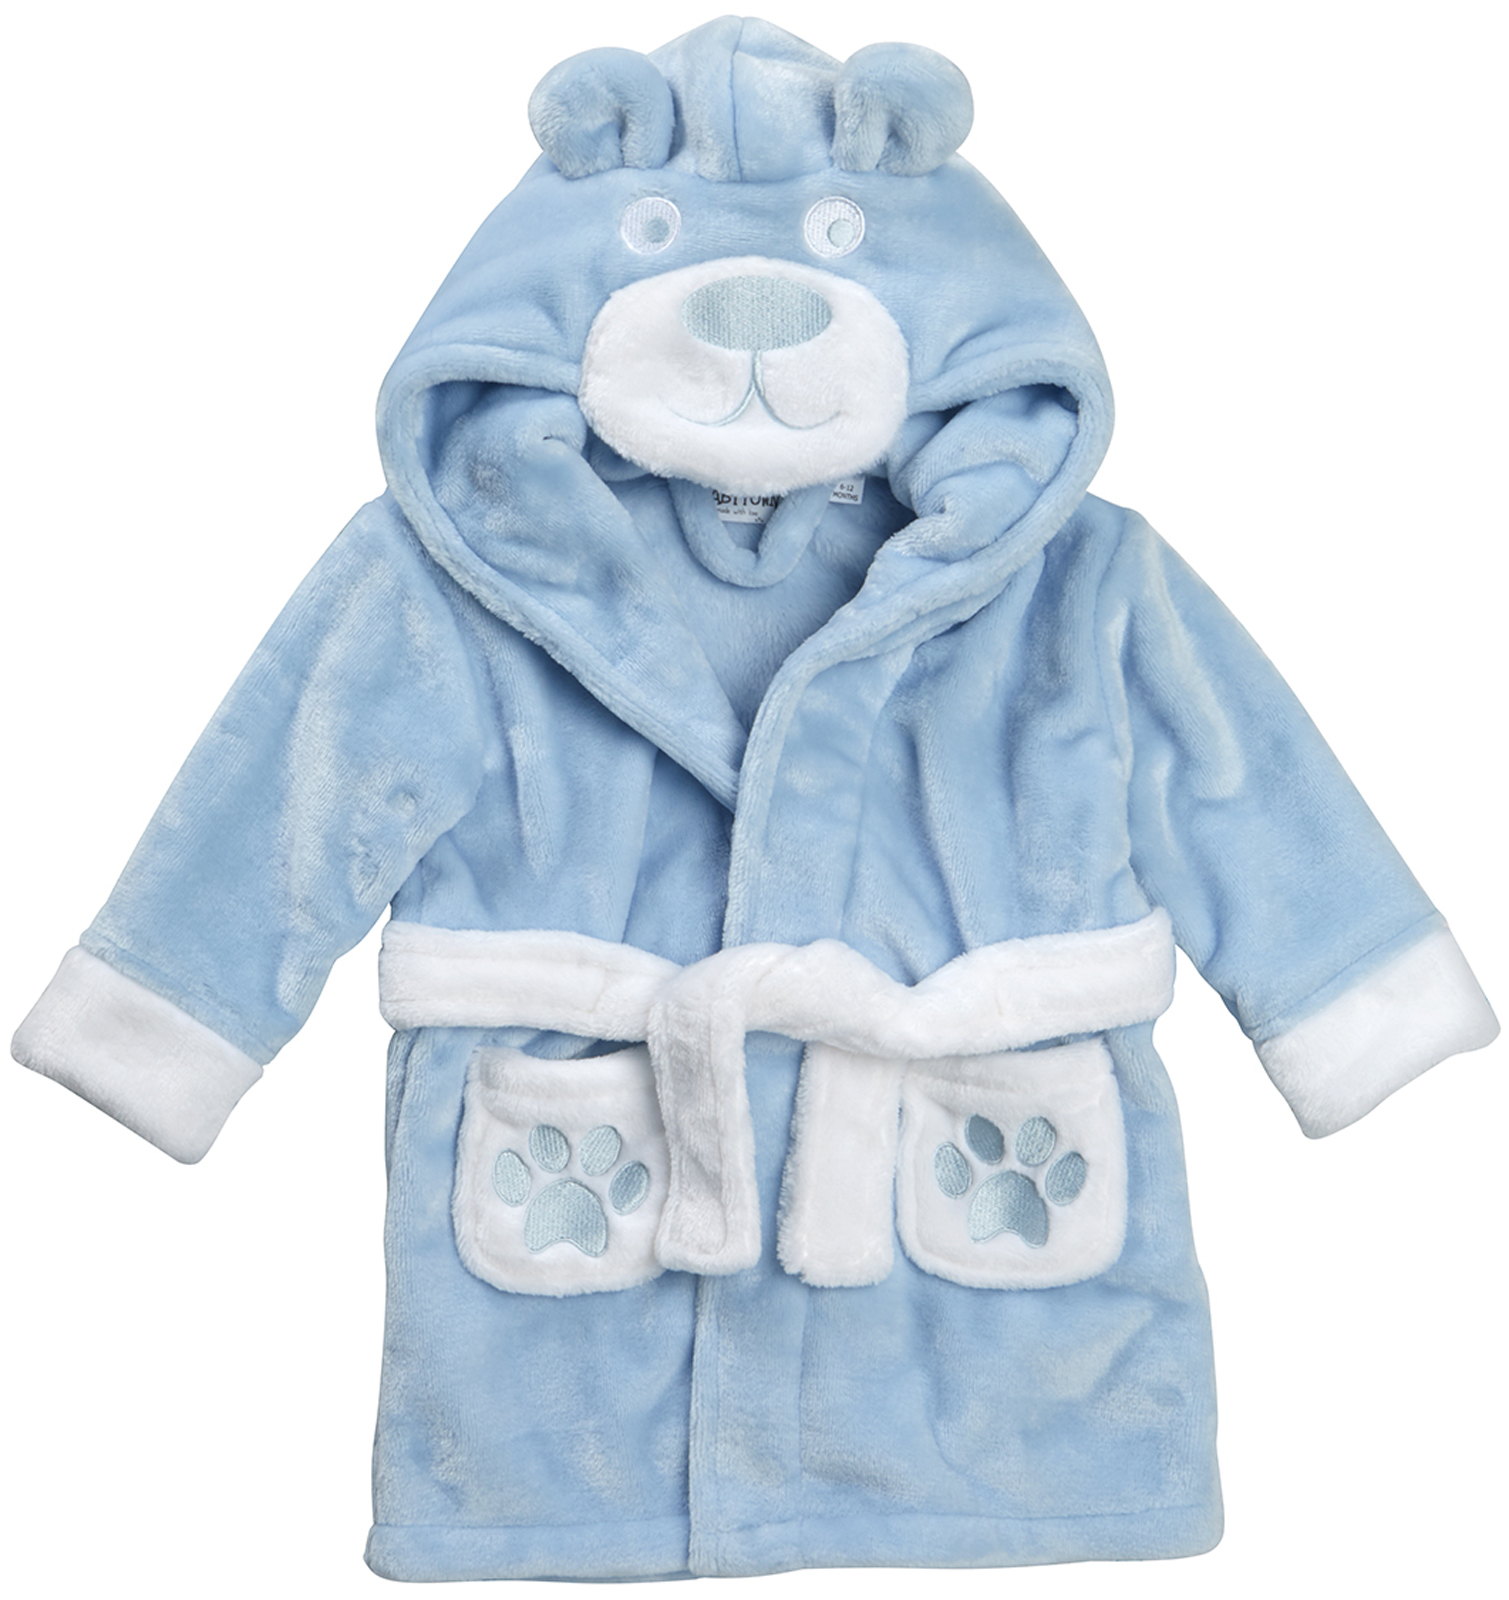 Find great deals on eBay for baby boy bath robe. Shop with confidence.